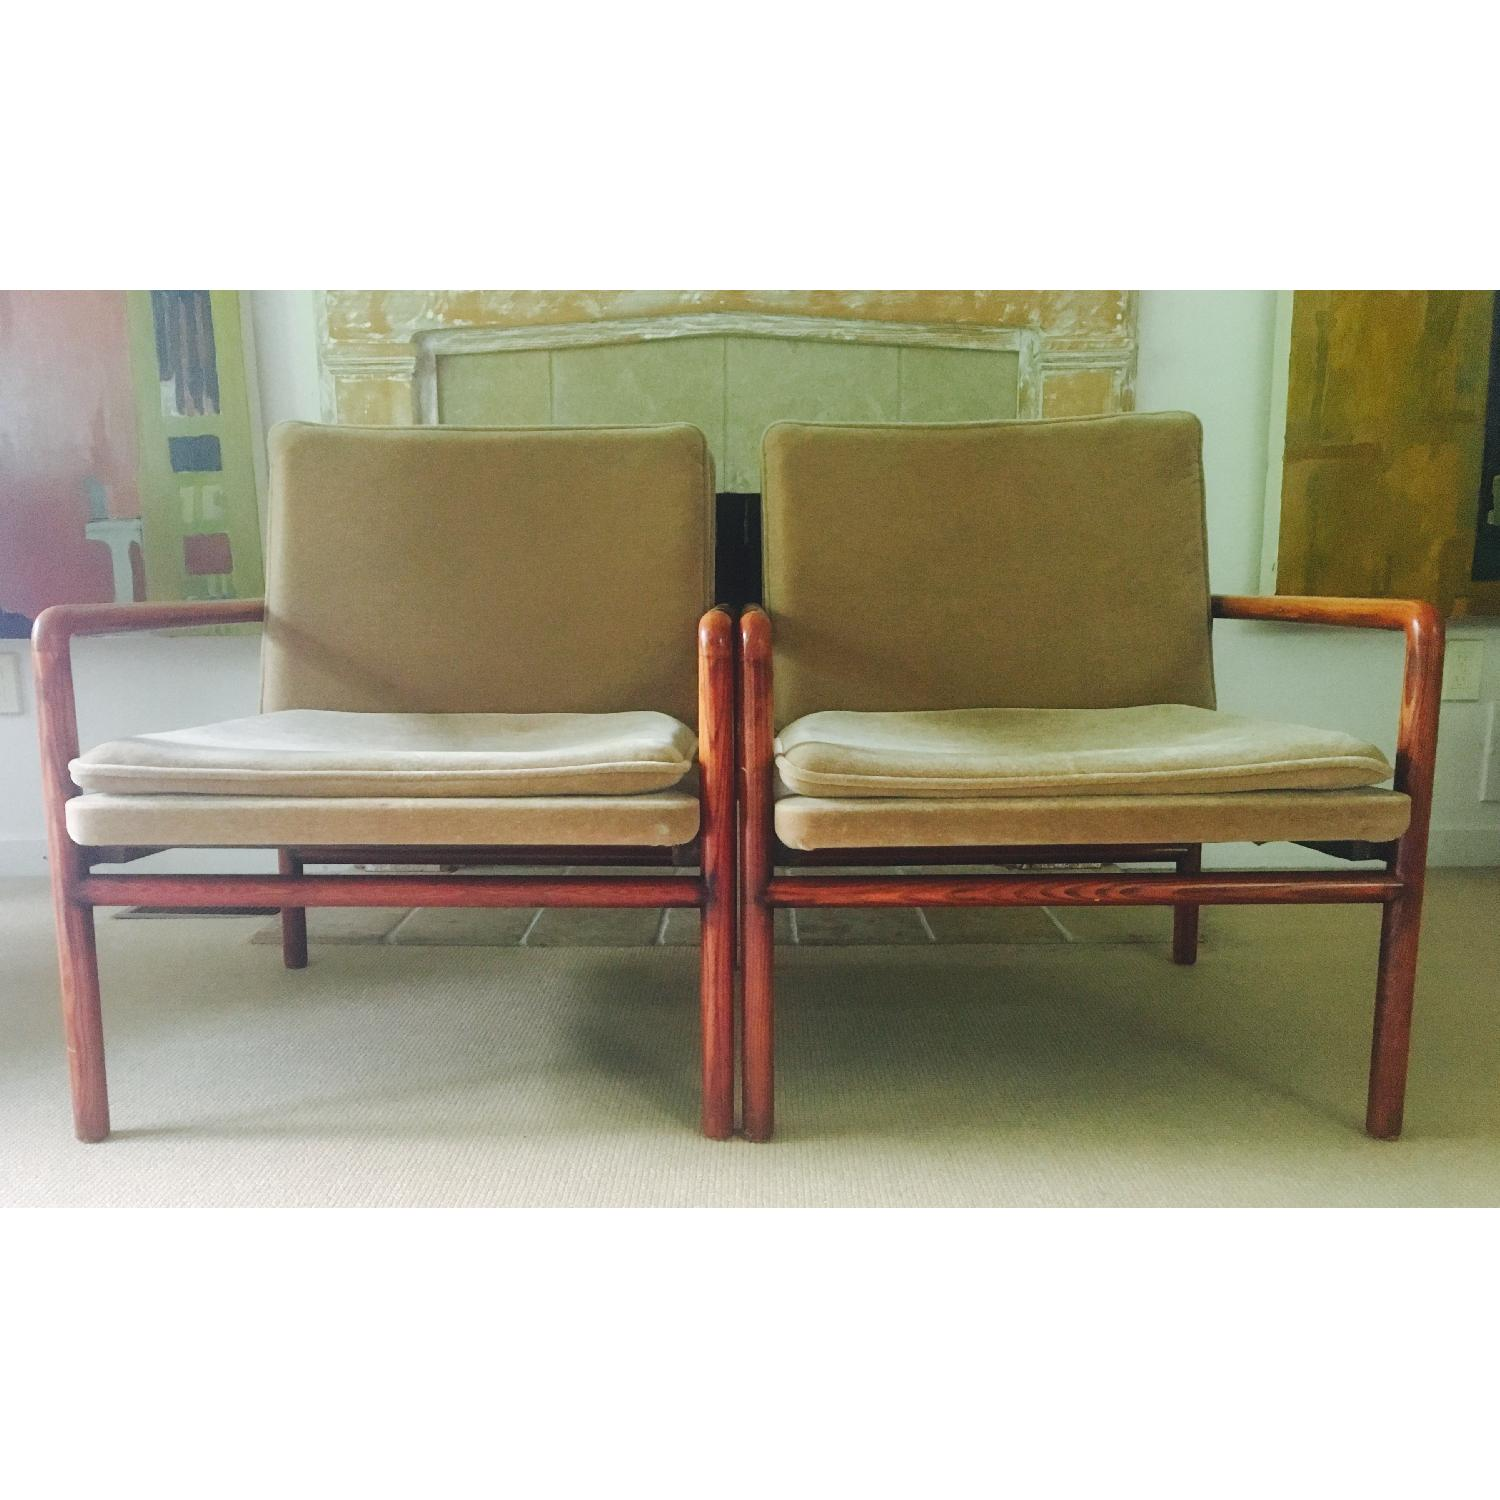 Mid Century Lounge Chairs - image-7